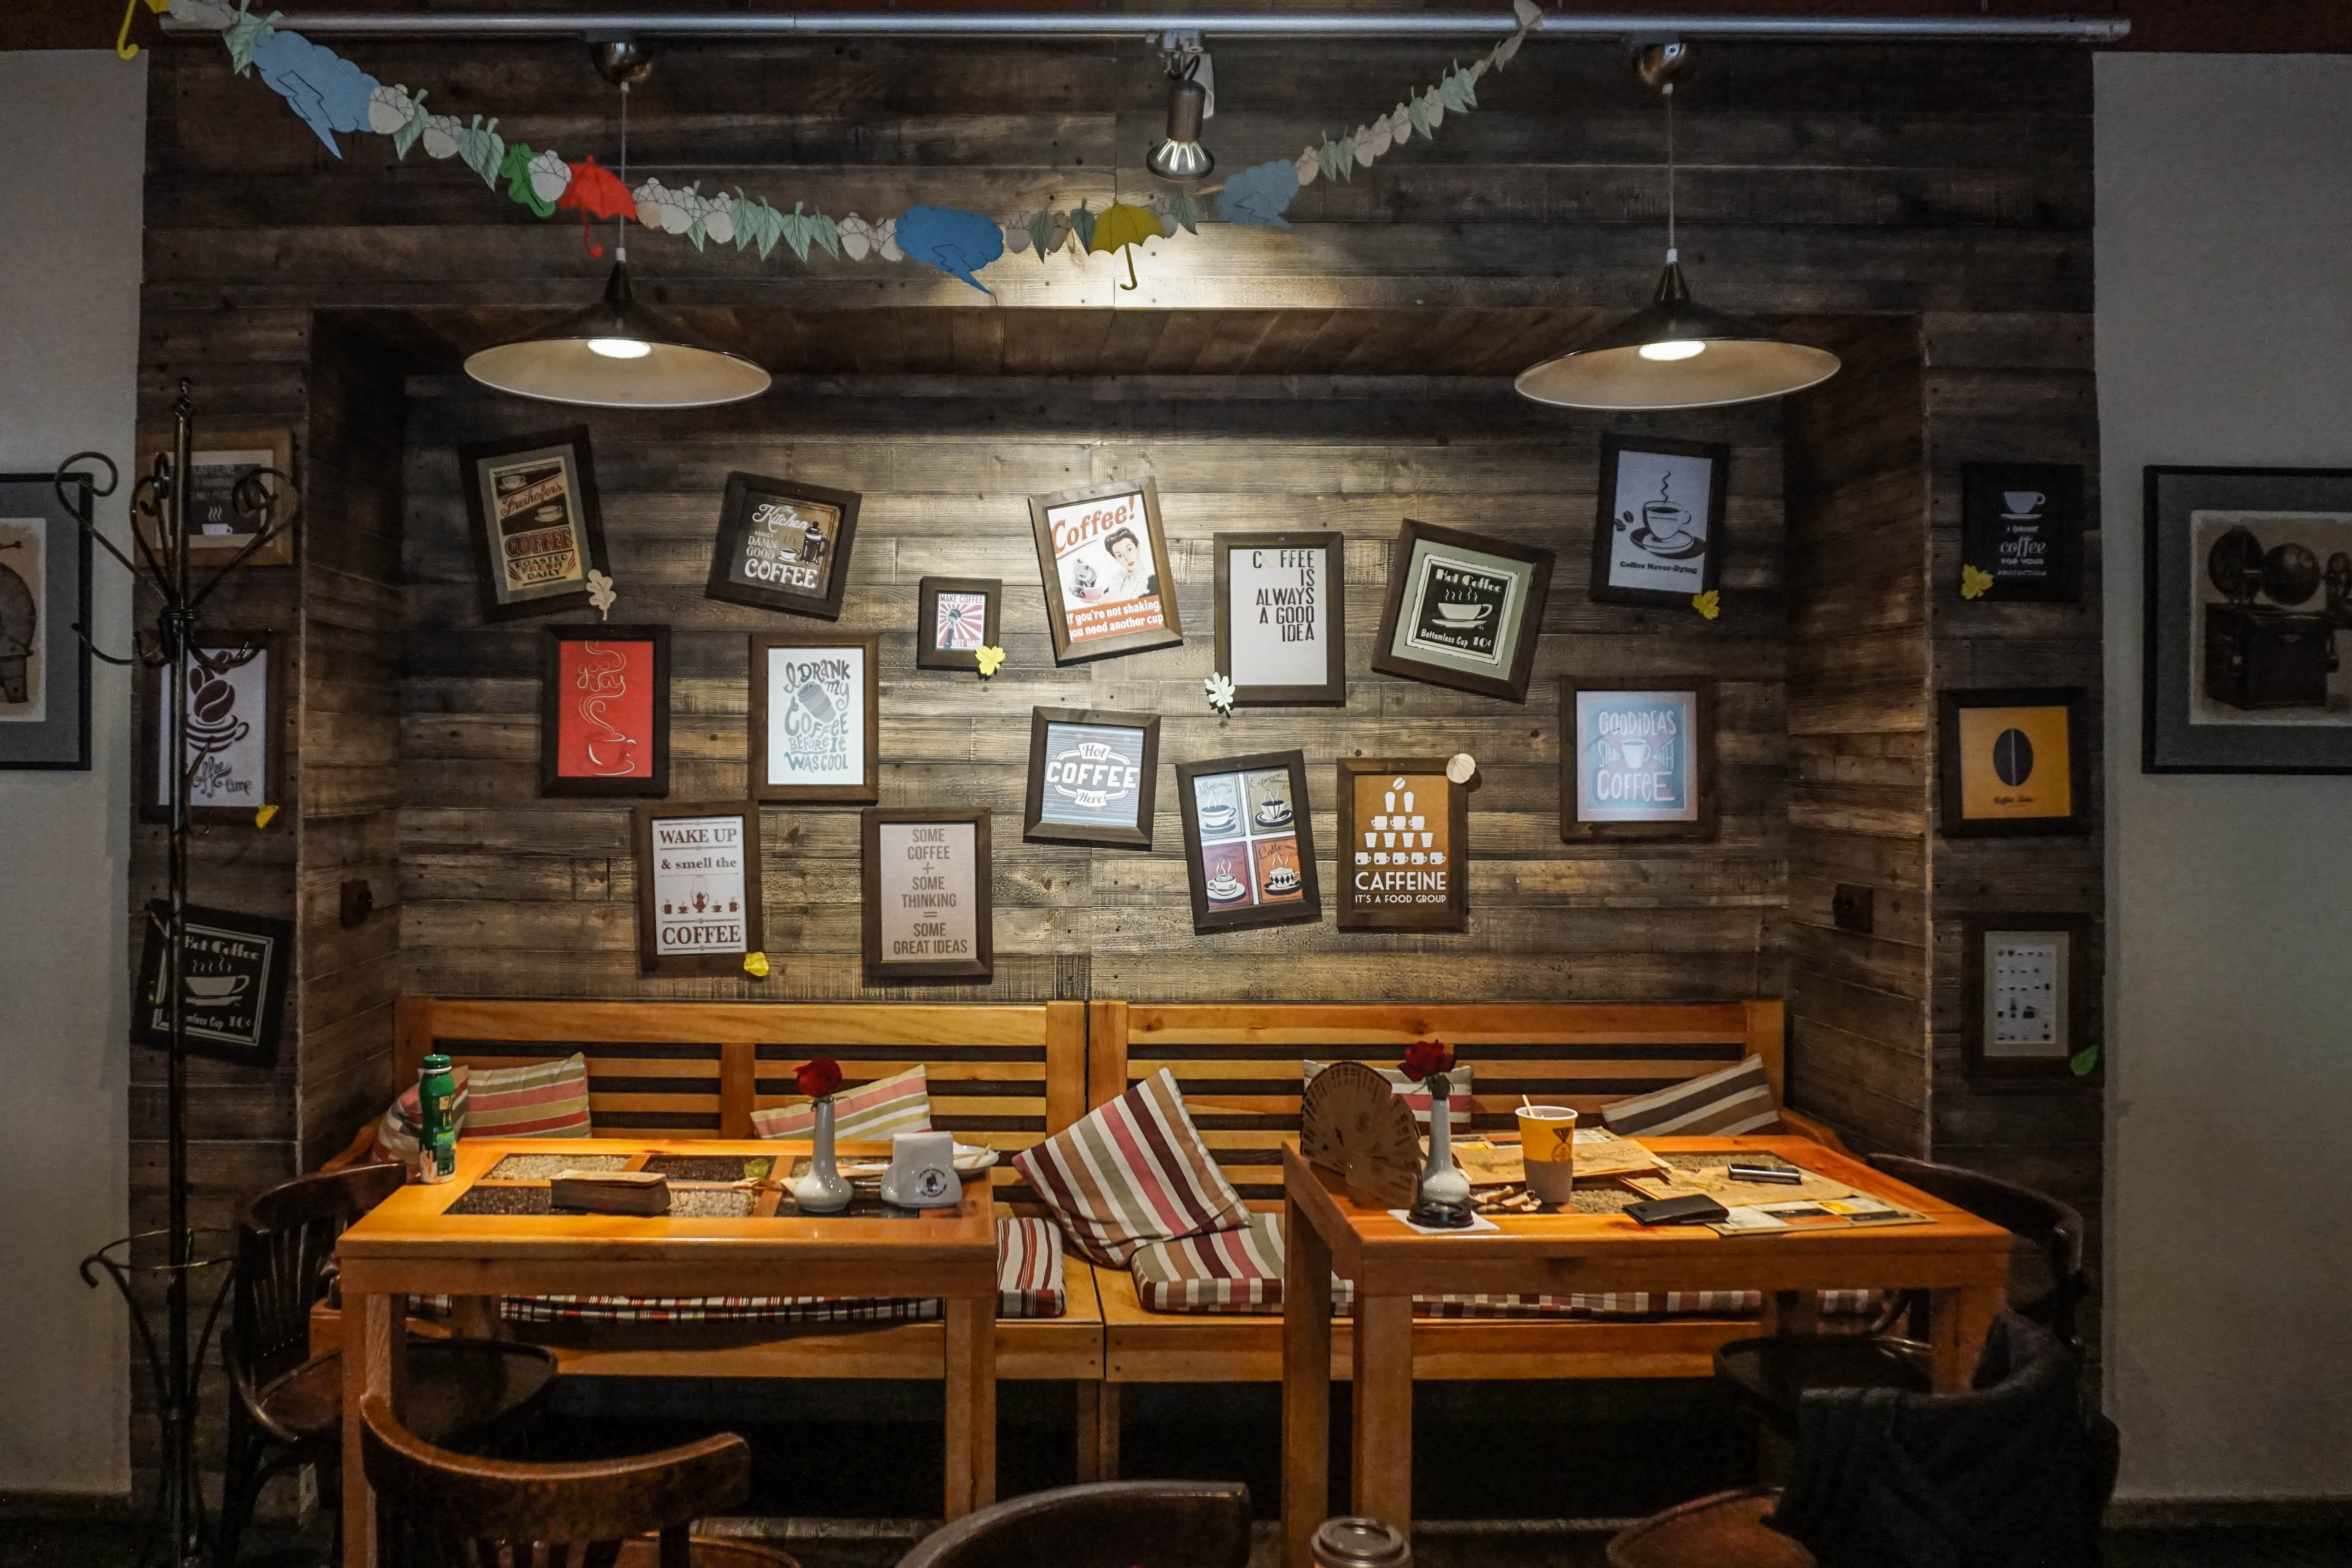 dinning tables near wall with photo frame decor free